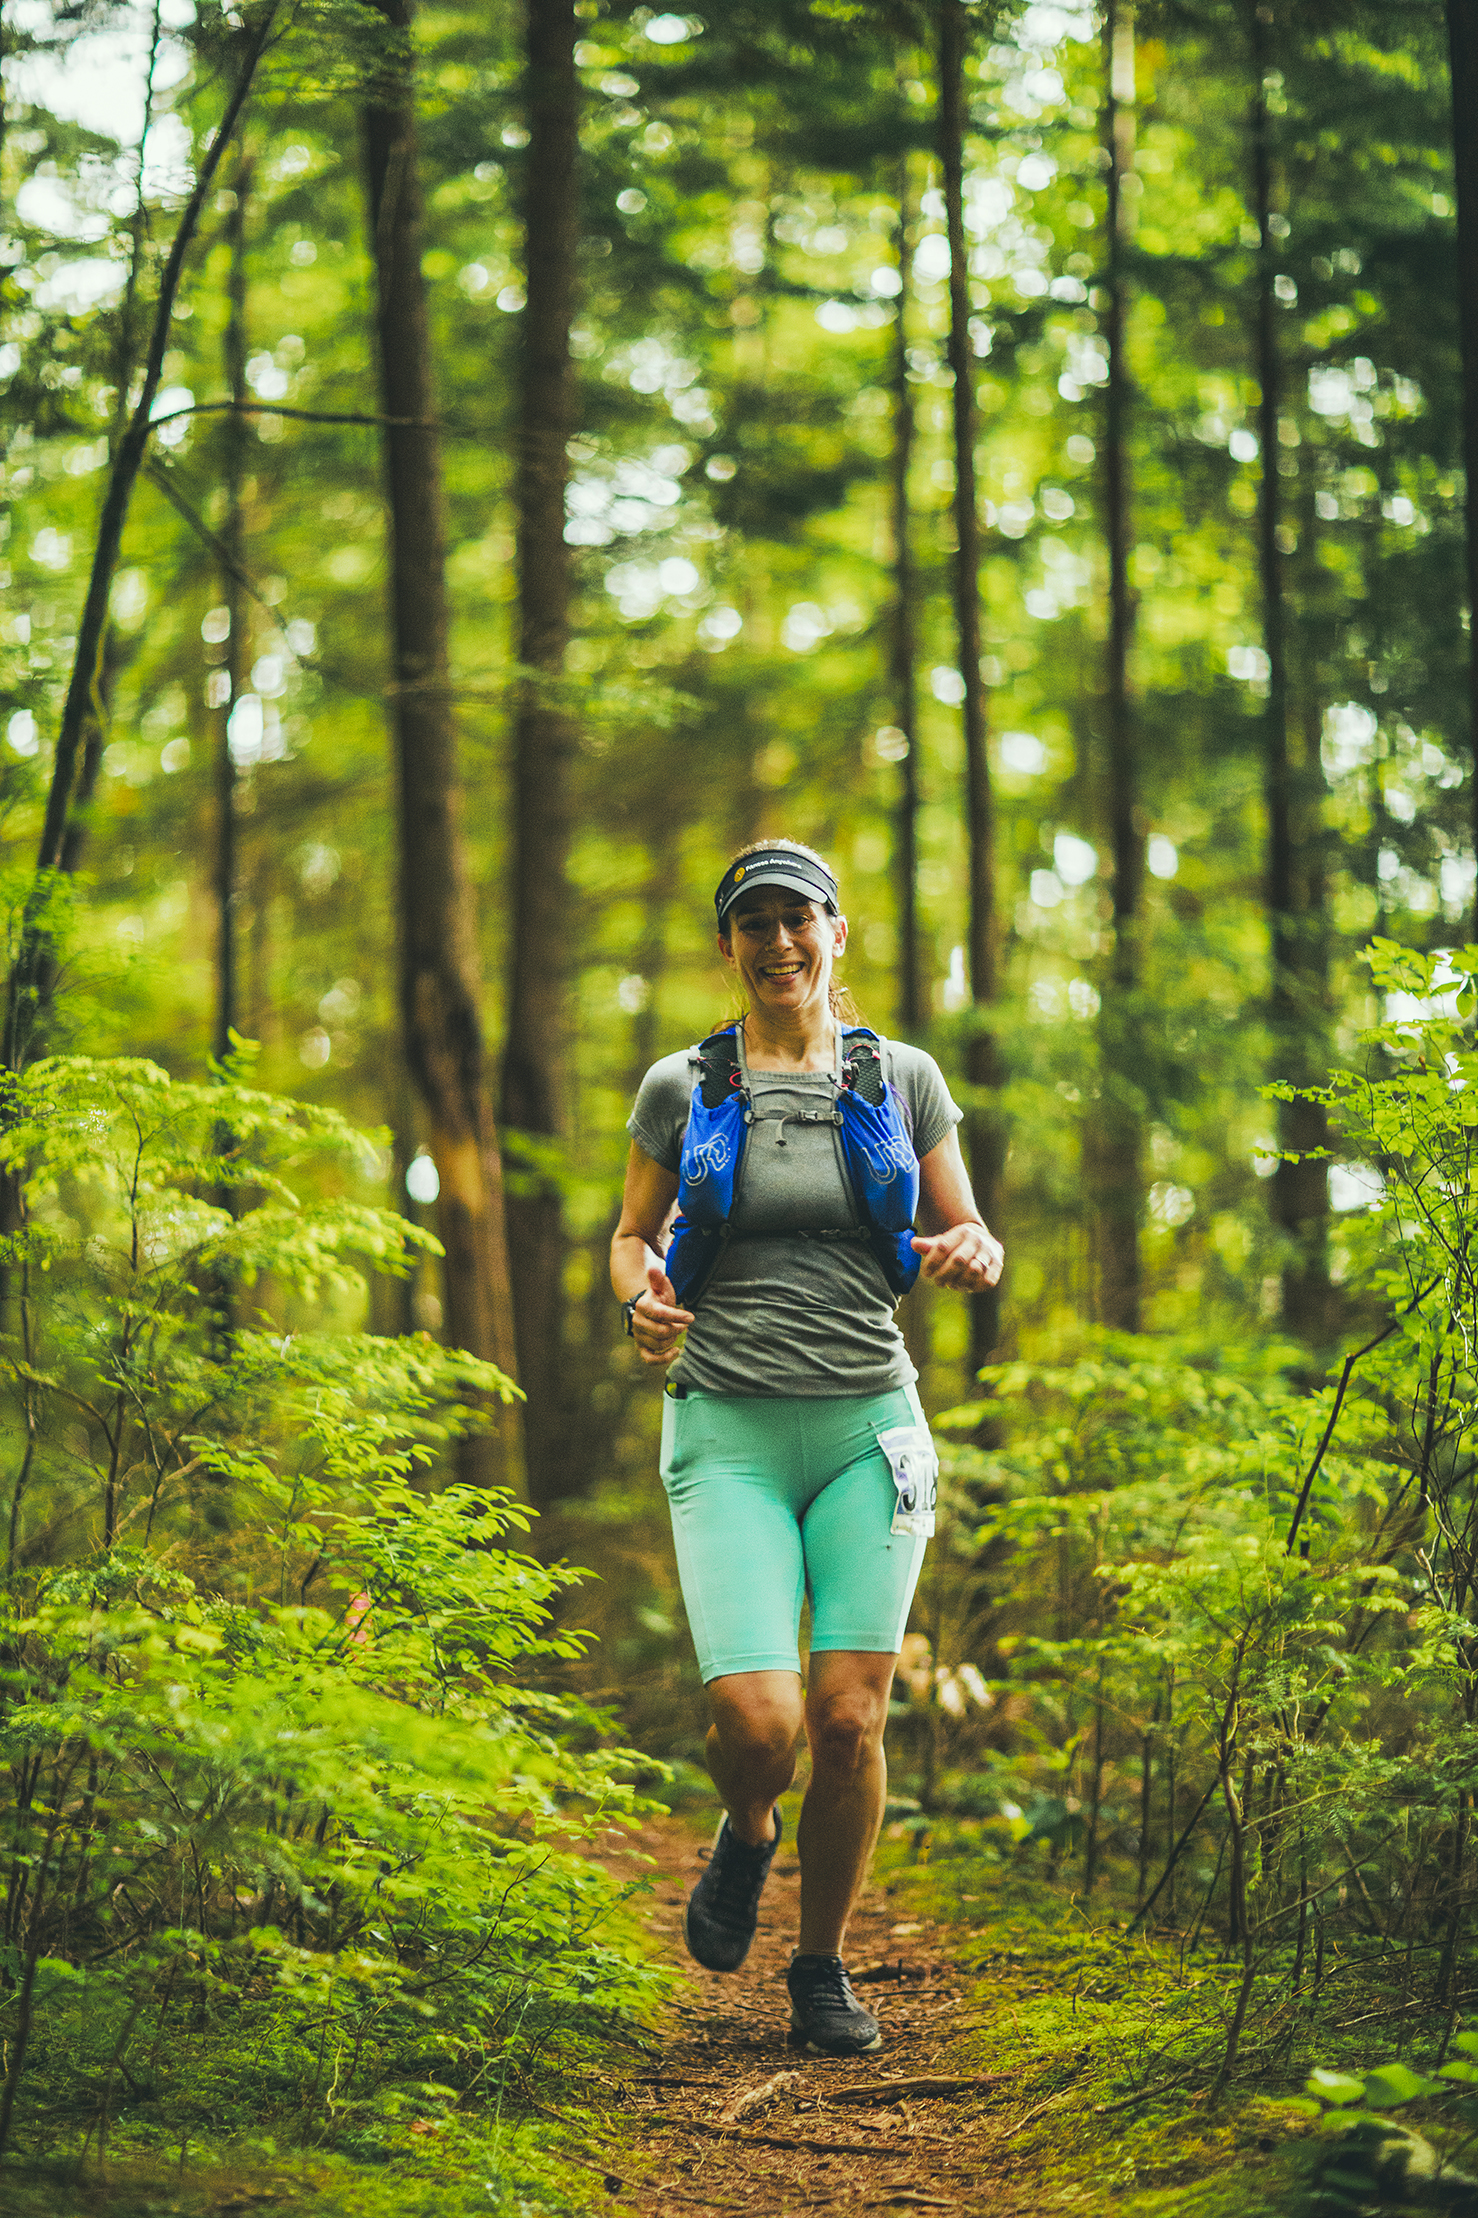 Fraser Valley Trail Races - Bear Mountain - IMG_2176 by Brice Ferre Studio - Vancouver Portrait Adventure and Athlete Photographer.jpg